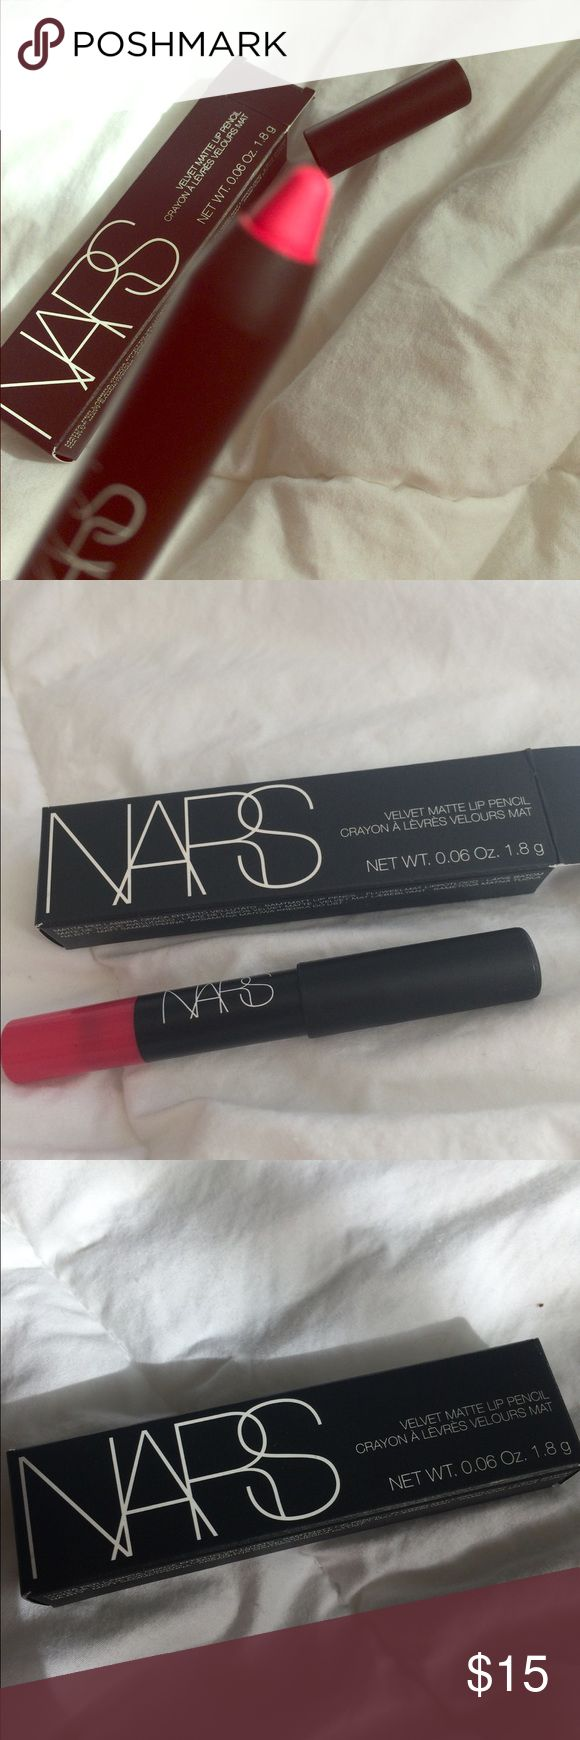 NARS Velvet Matte Lip Pencil Lets go crazy NIB, Never been used, DELUXE sized sample NARS Makeup Lipstick